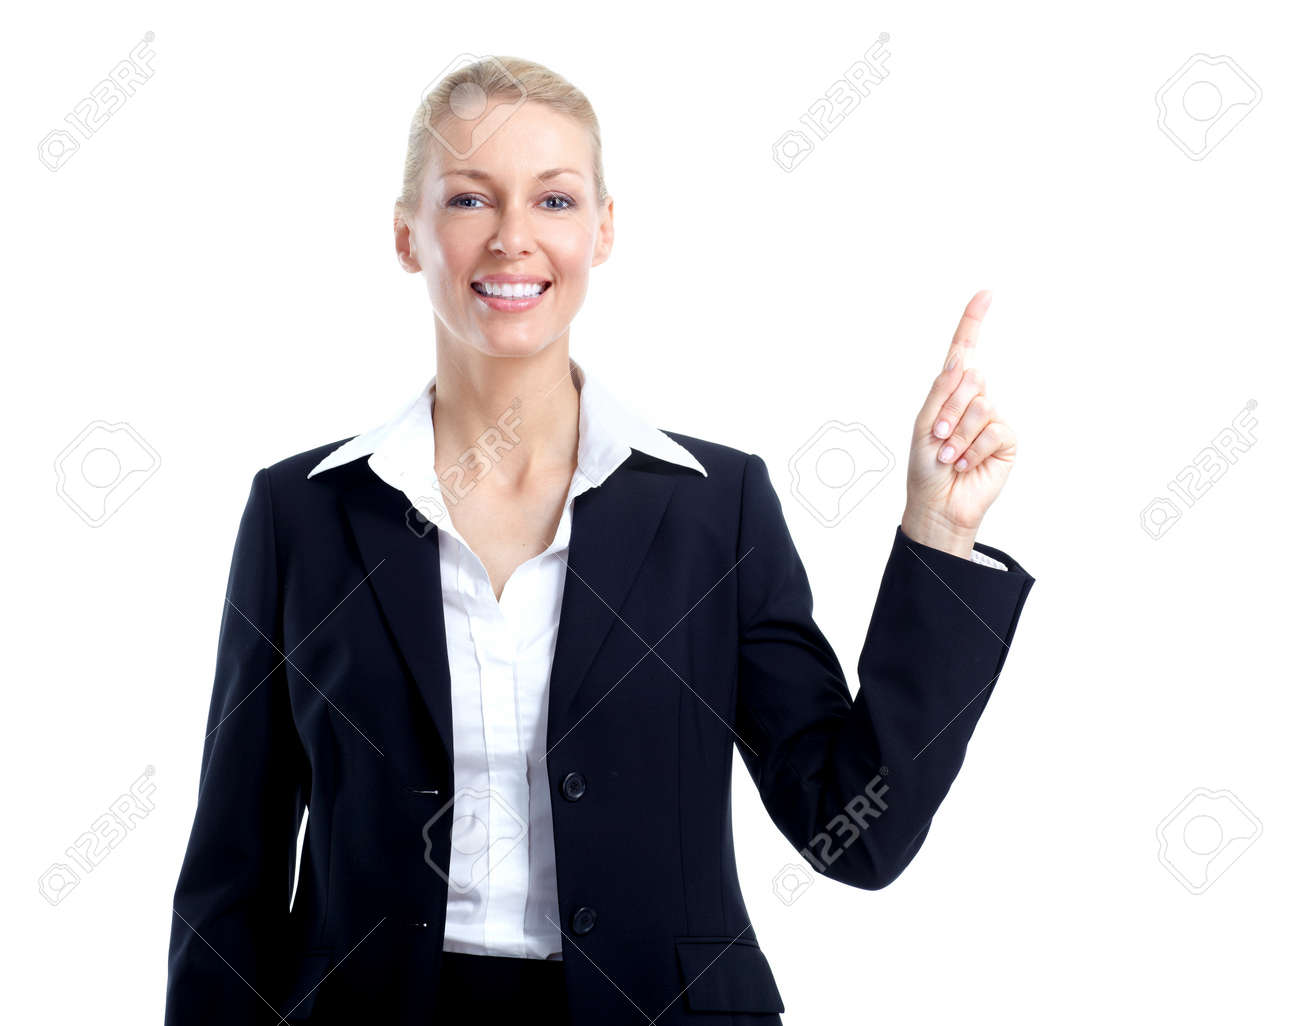 Business woman accountant. Stock Photo - 11455132